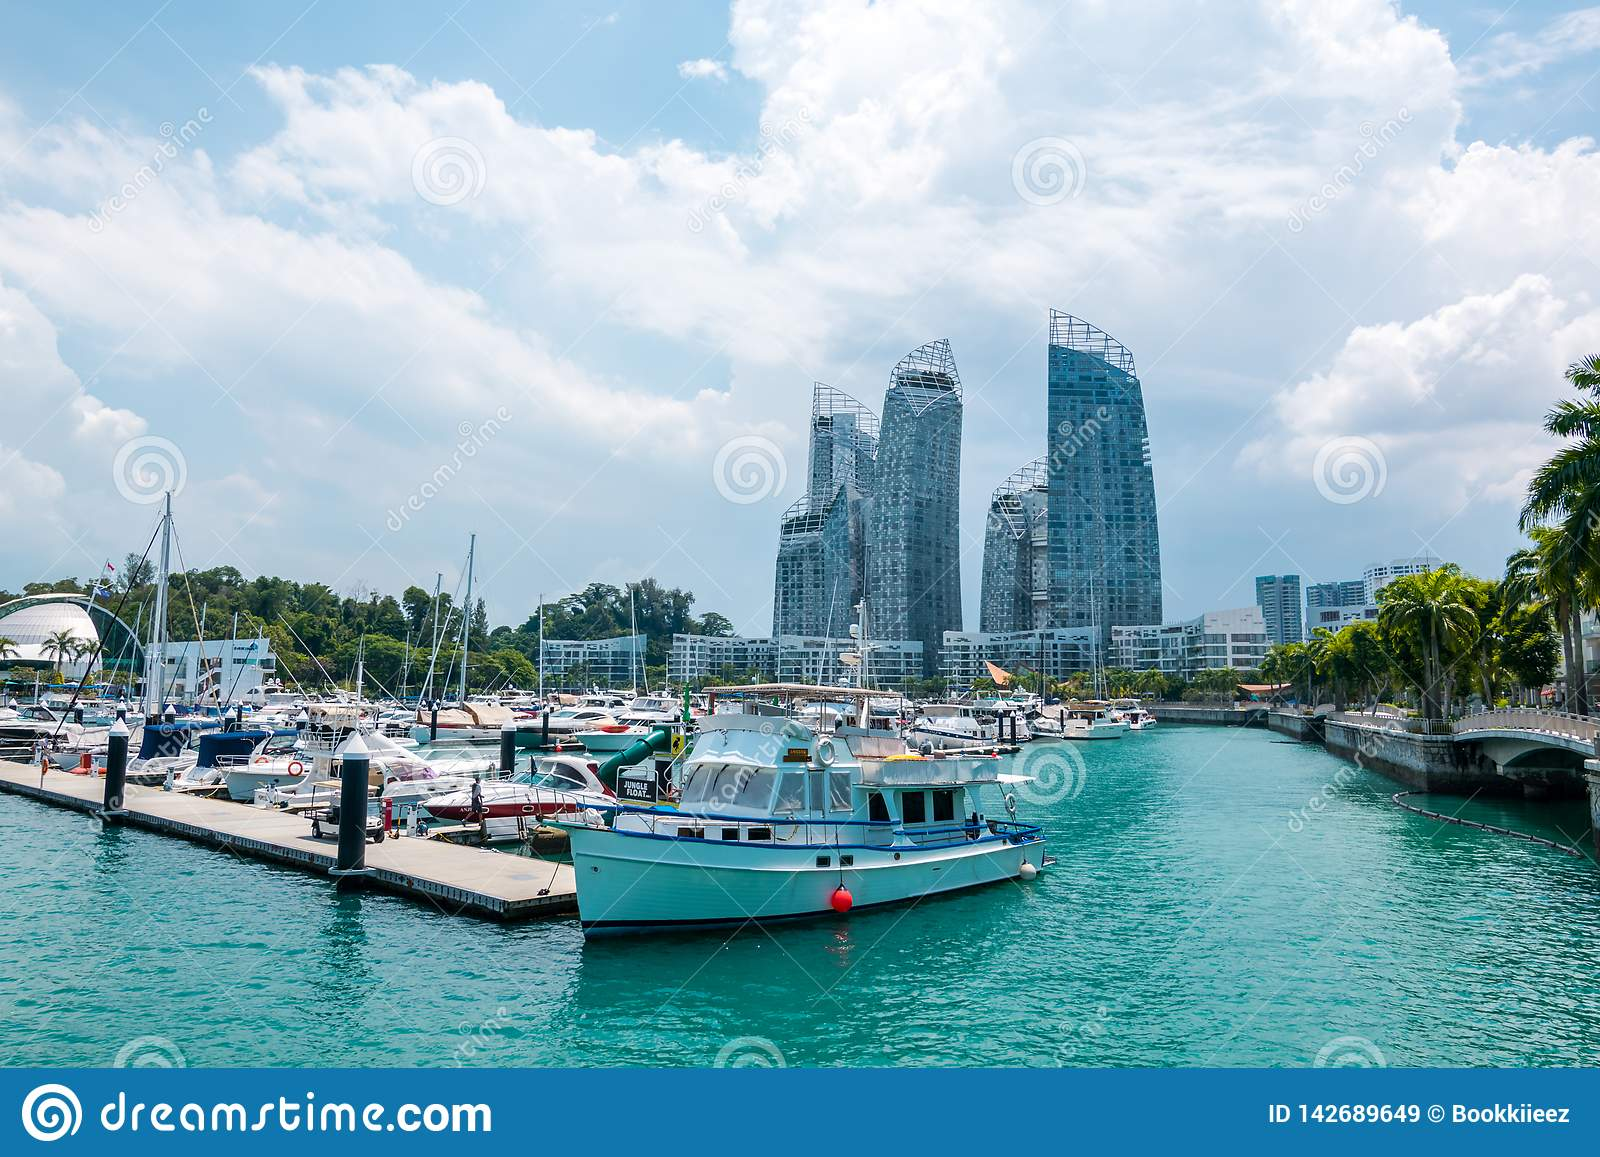 The cityscape with boats view of Keppel island in Singapore.